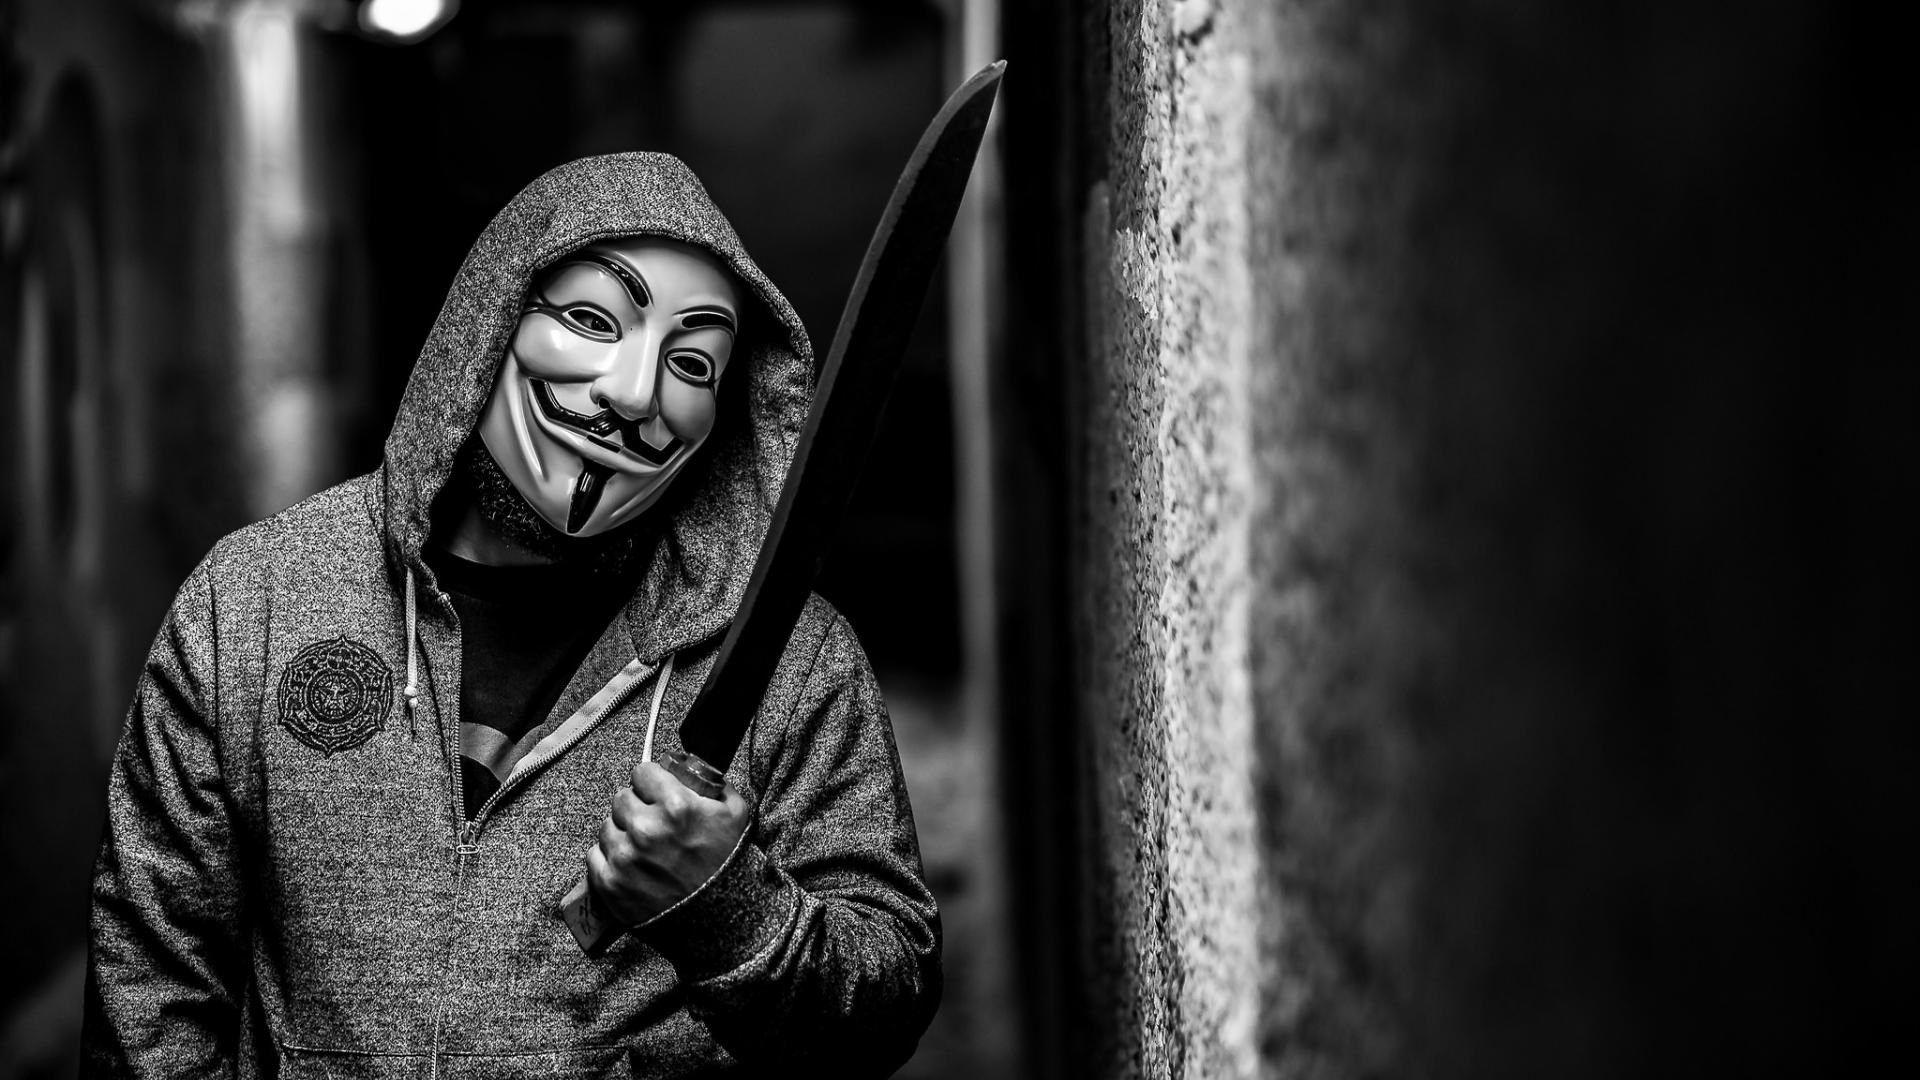 Anonymous Mask Wallpapers - Wallpaper Cave